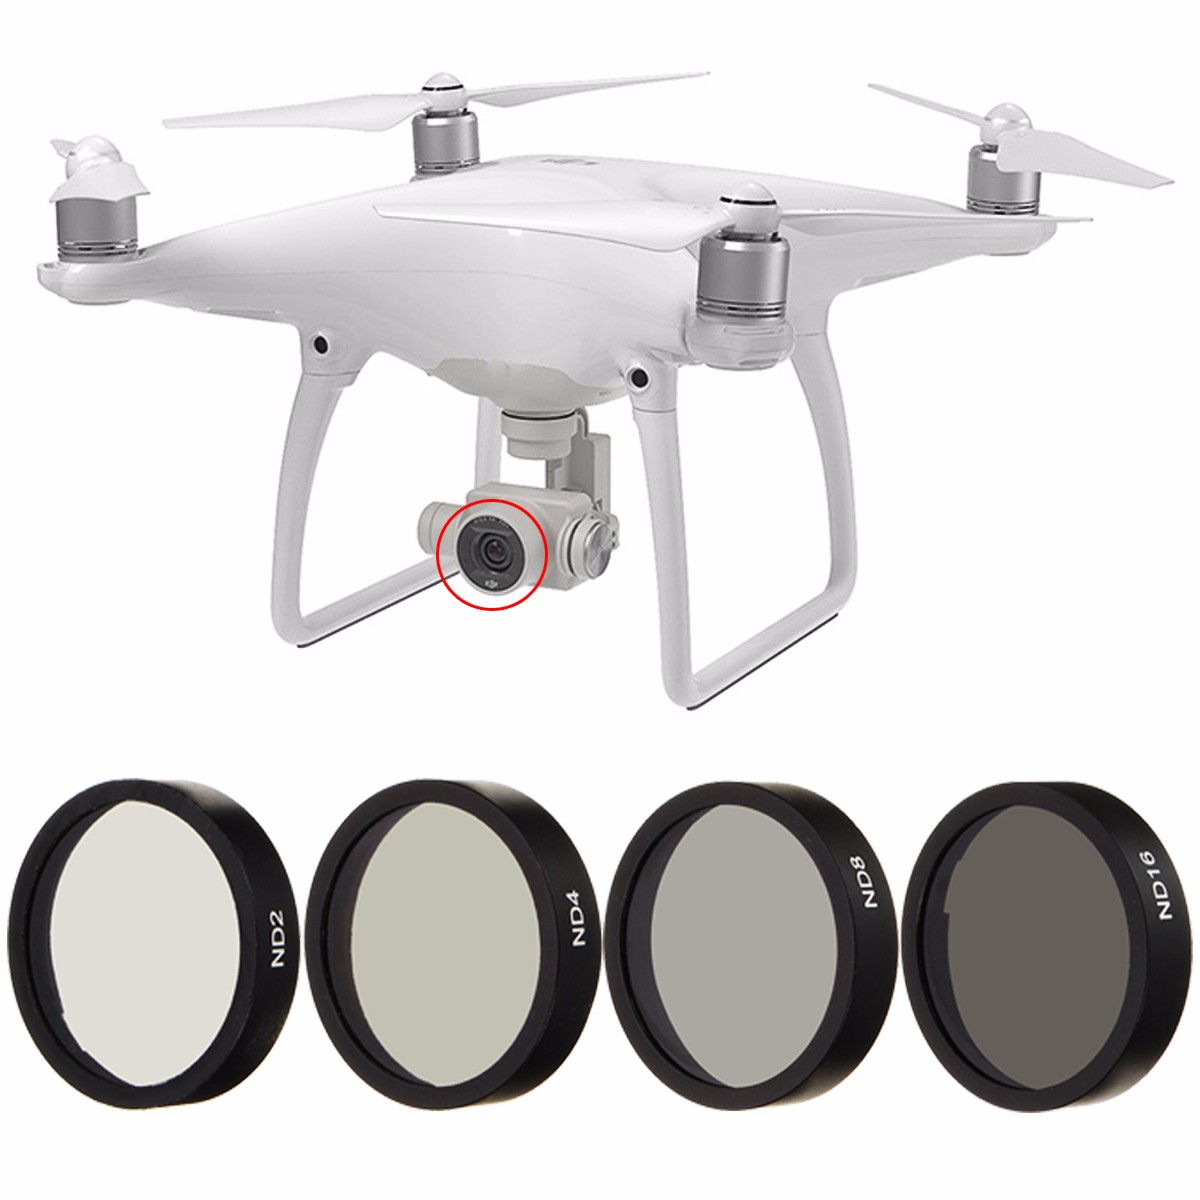 new-4pc-nd2-nd4-nd8-nd16-len-filter-for-font-b-dji-b-font-font-b-phantom-b-font-3-4-professional-advanced-camera-camera-drone-lens-set-black-frame